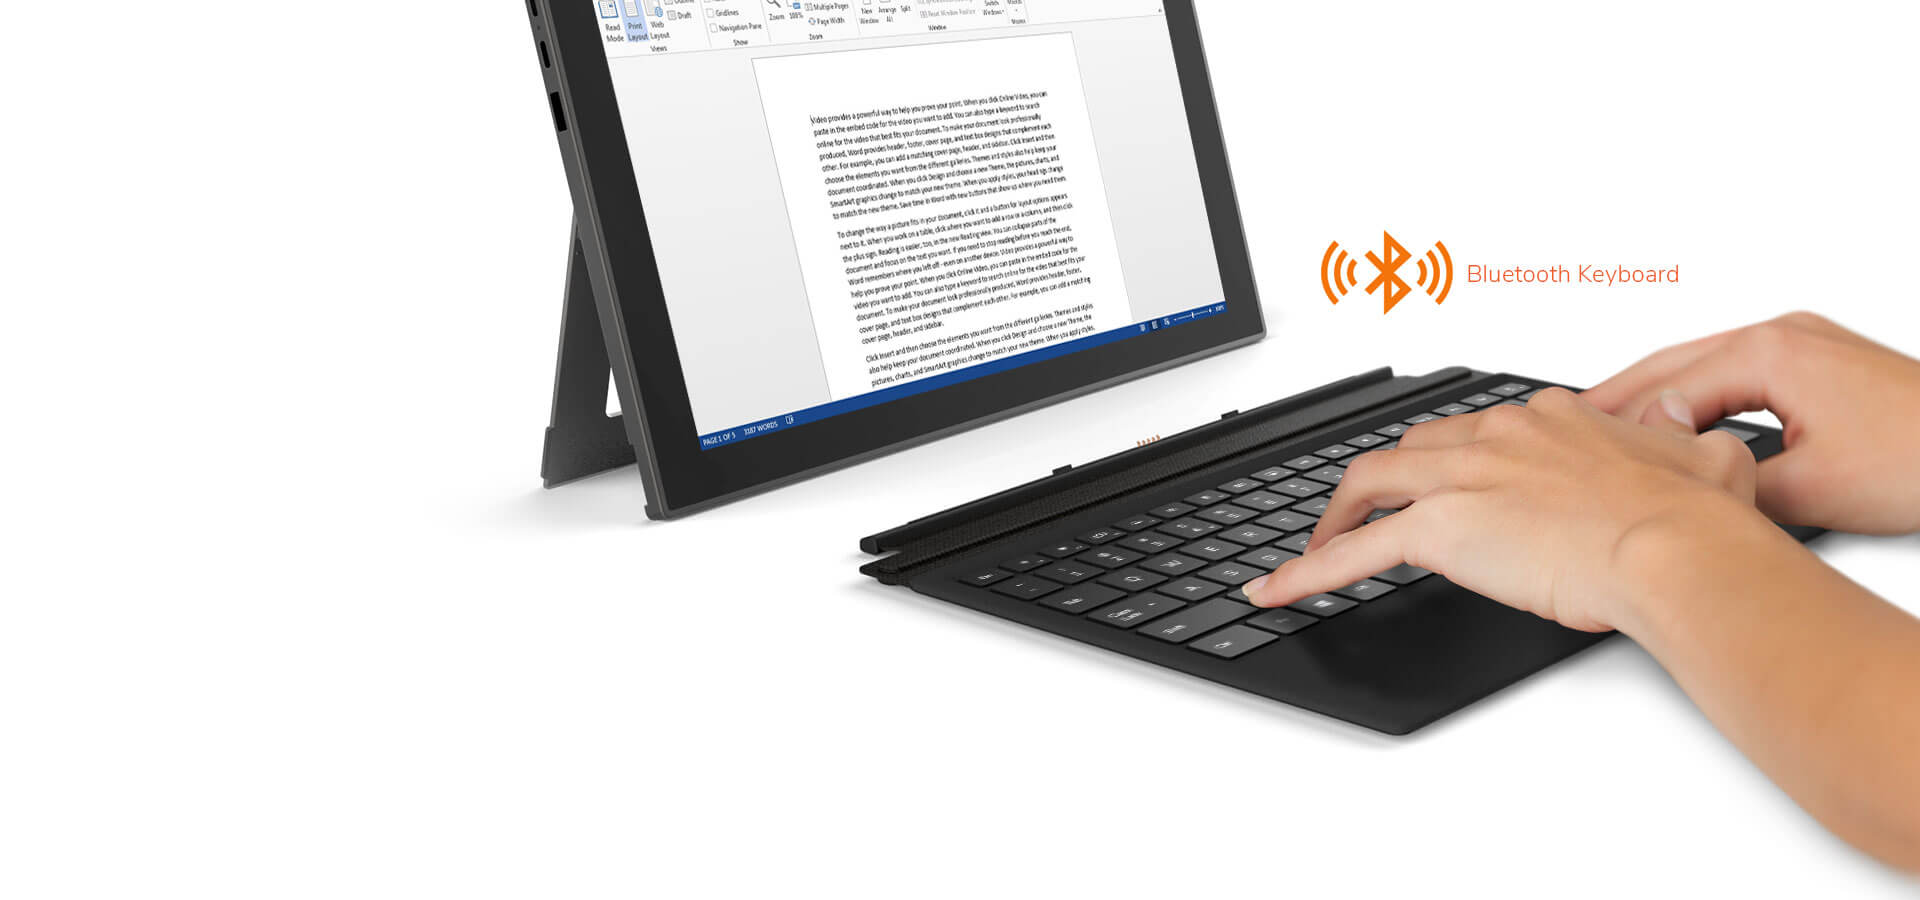 Smartron tbook Flex 2-in-1 Laptop Launched in India